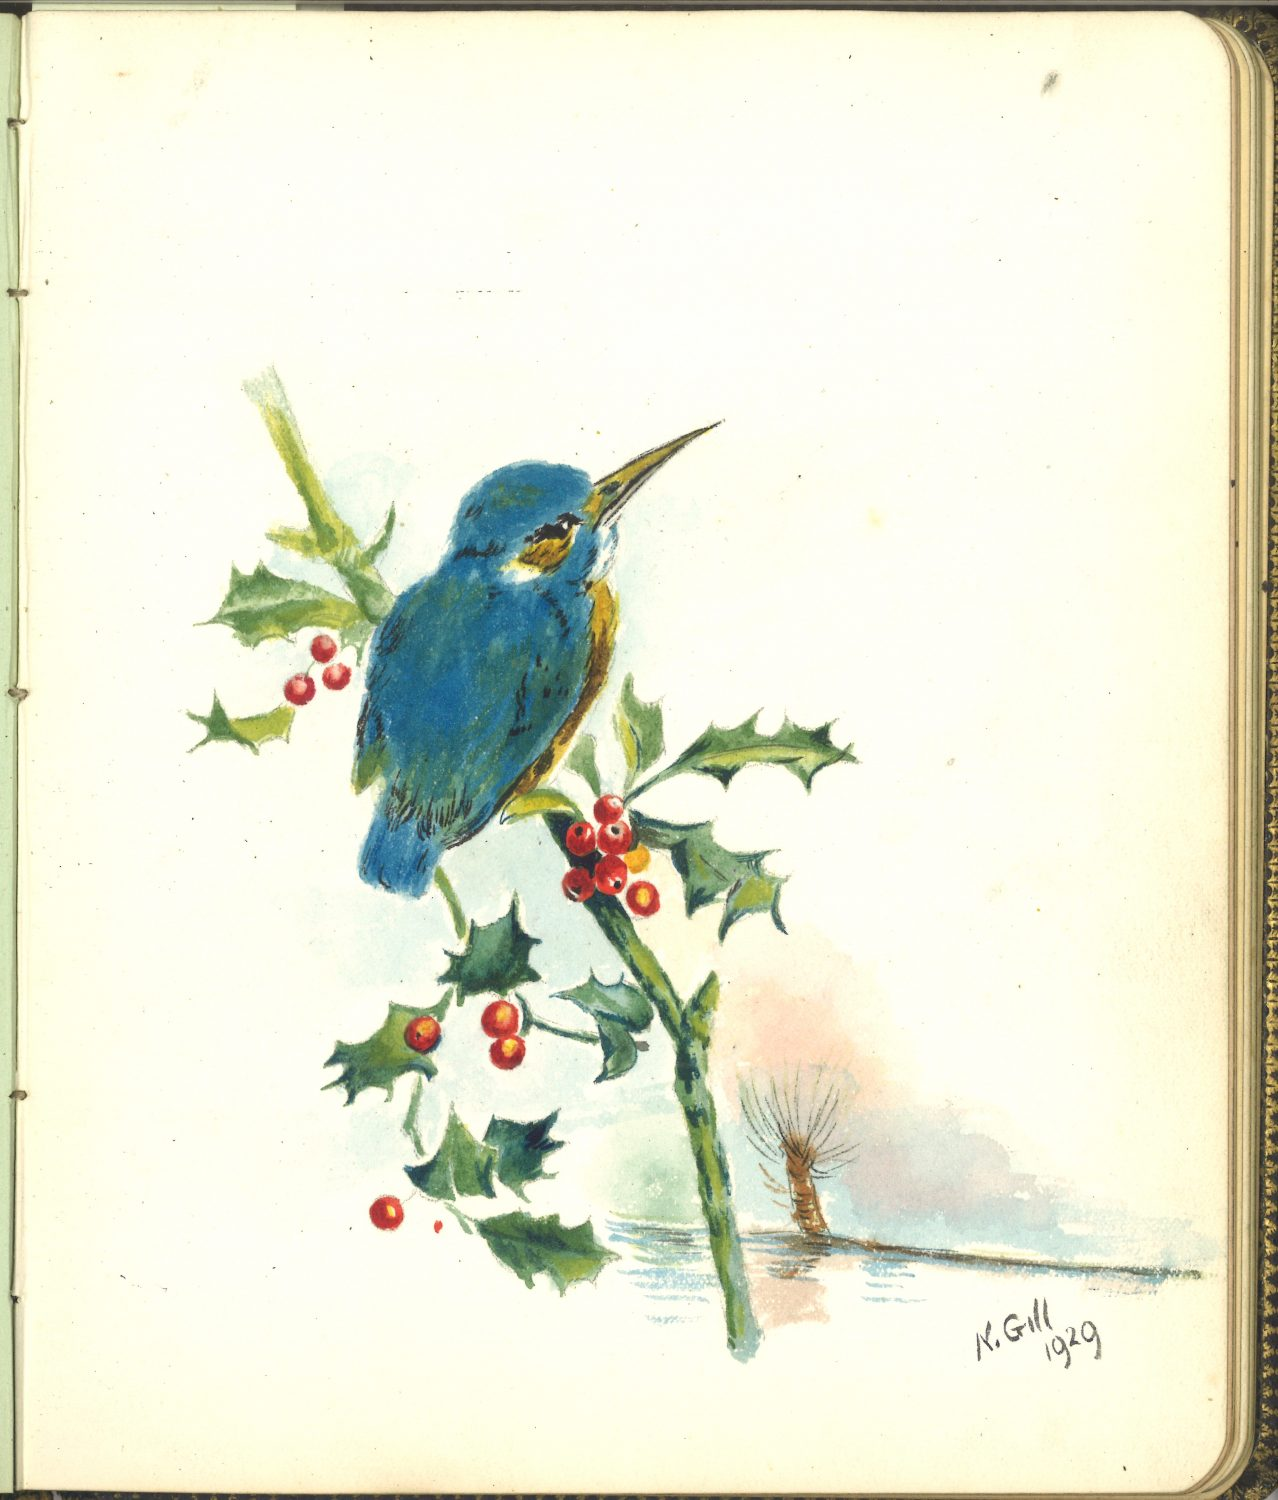 coloured drawing of a small blue bird sitting on a holly branch